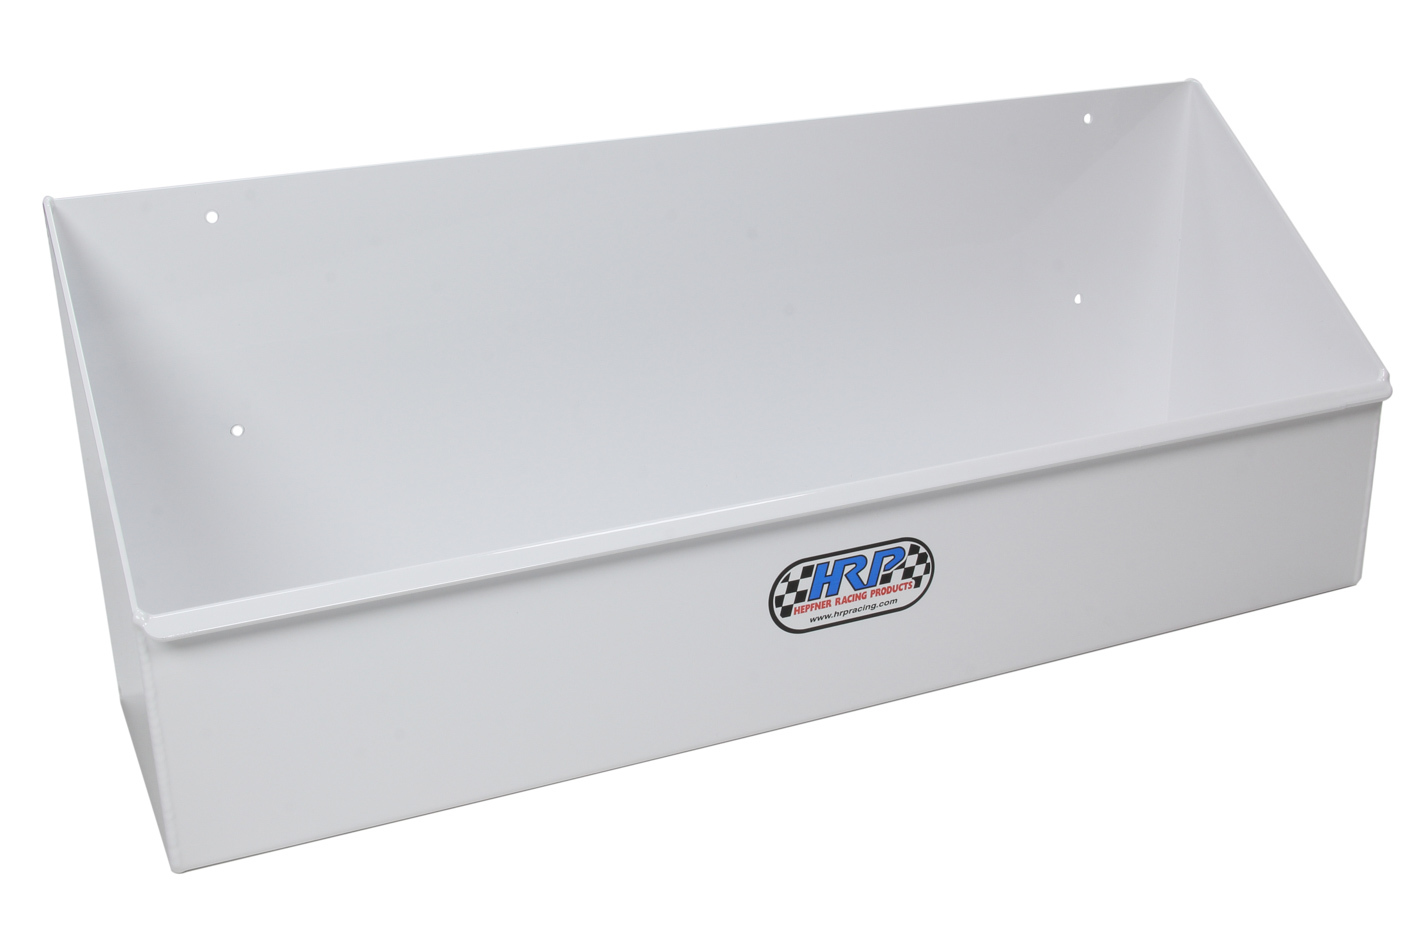 Hepfner Racing Products HRP6518-WHT Gear Case Rack, Horizontal, 21 in Long, 8-1/4 in Tall, 6 in Deep, 10 Case Capacity, Aluminum, White Powder Coat, Each